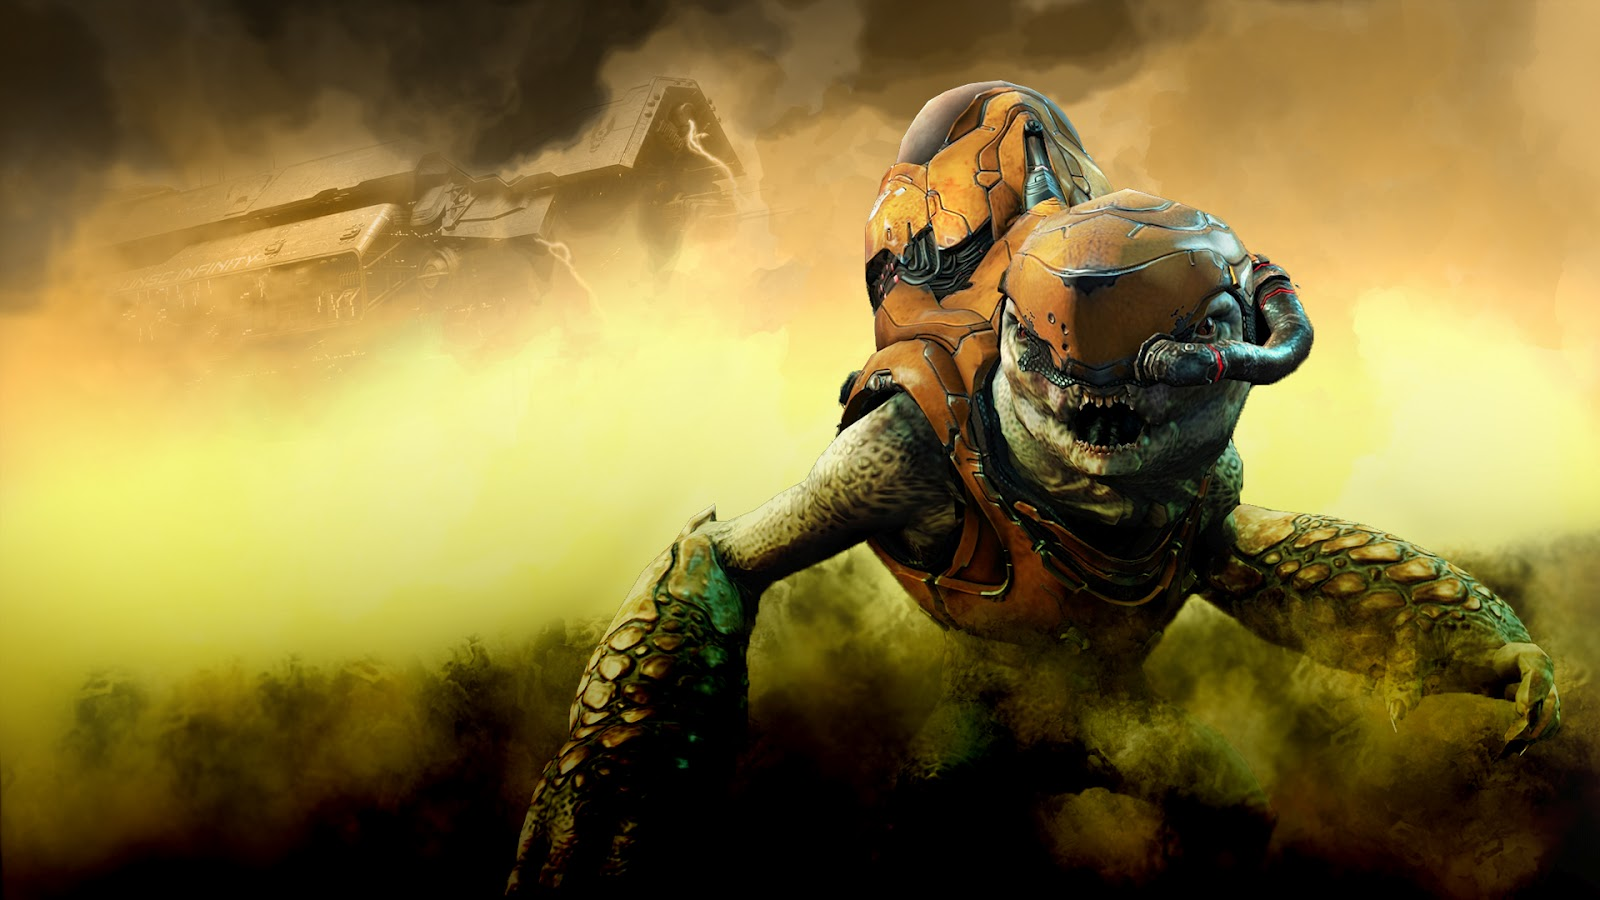 Cool Halo 4 Wallpapers 28756 Hd Wallpapers Background 1600x900